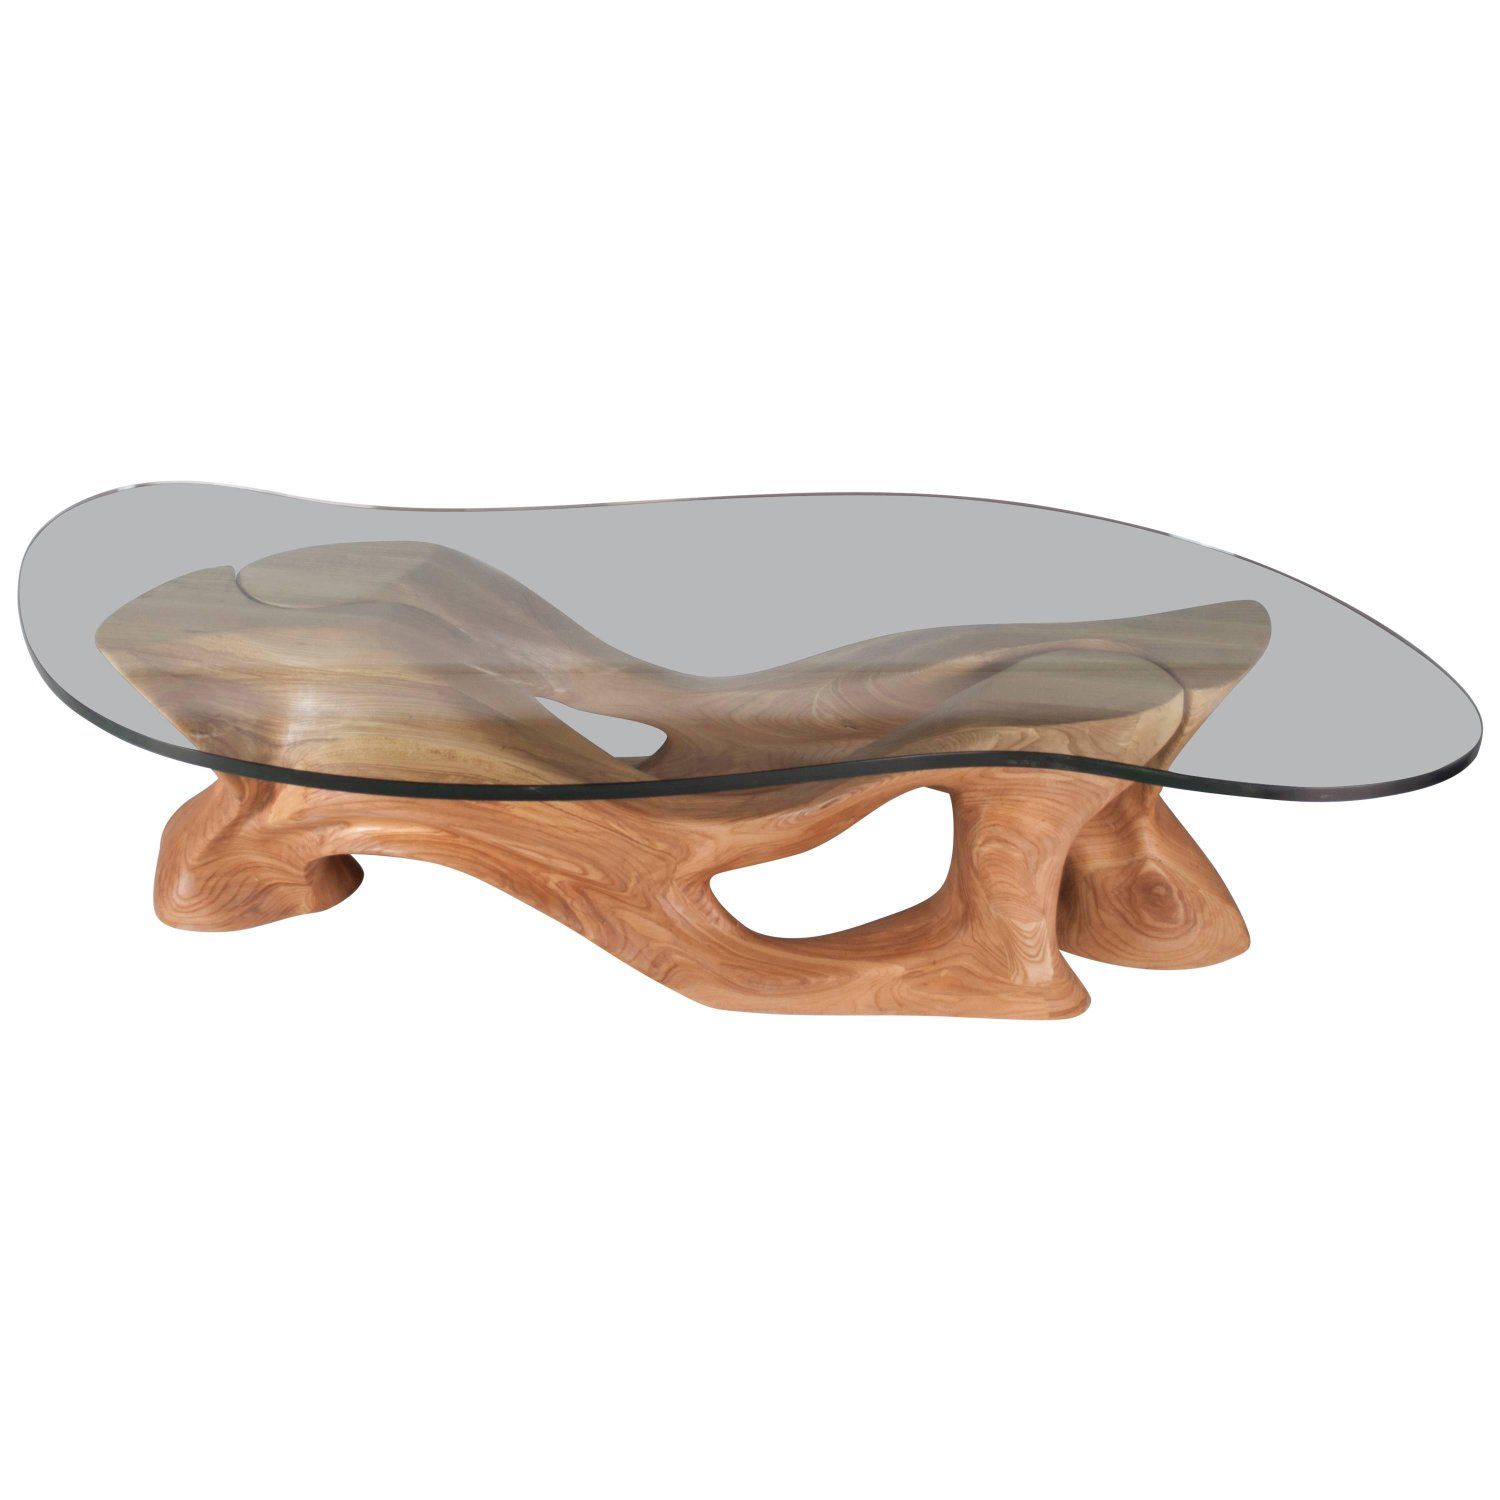 Amorph Crux Coffee Table Solid Wood Organic Shaped Glass Coffee Table Coffee Table Wood Wood Cocktail Table [ 1500 x 1500 Pixel ]